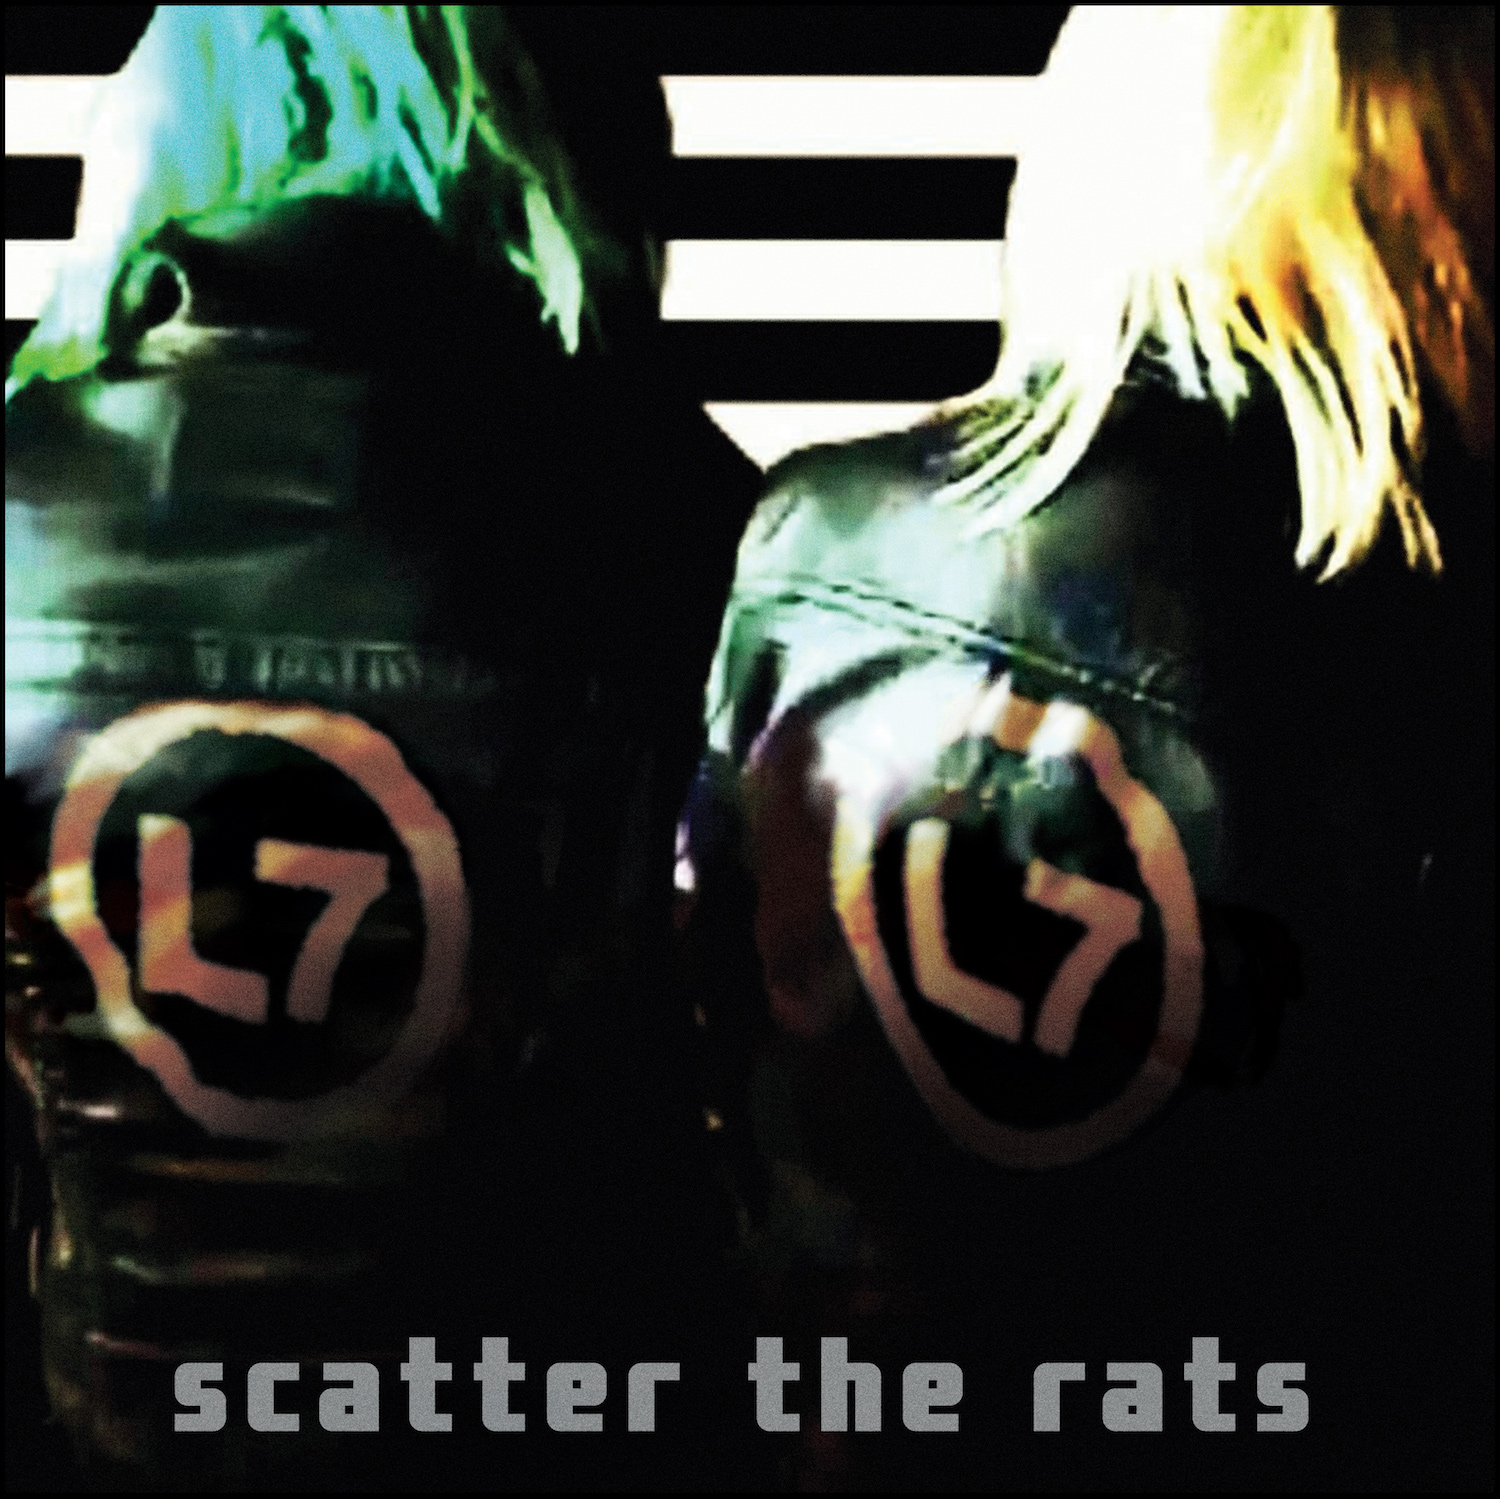 L7_Scatter The Rats_art copy.jpg